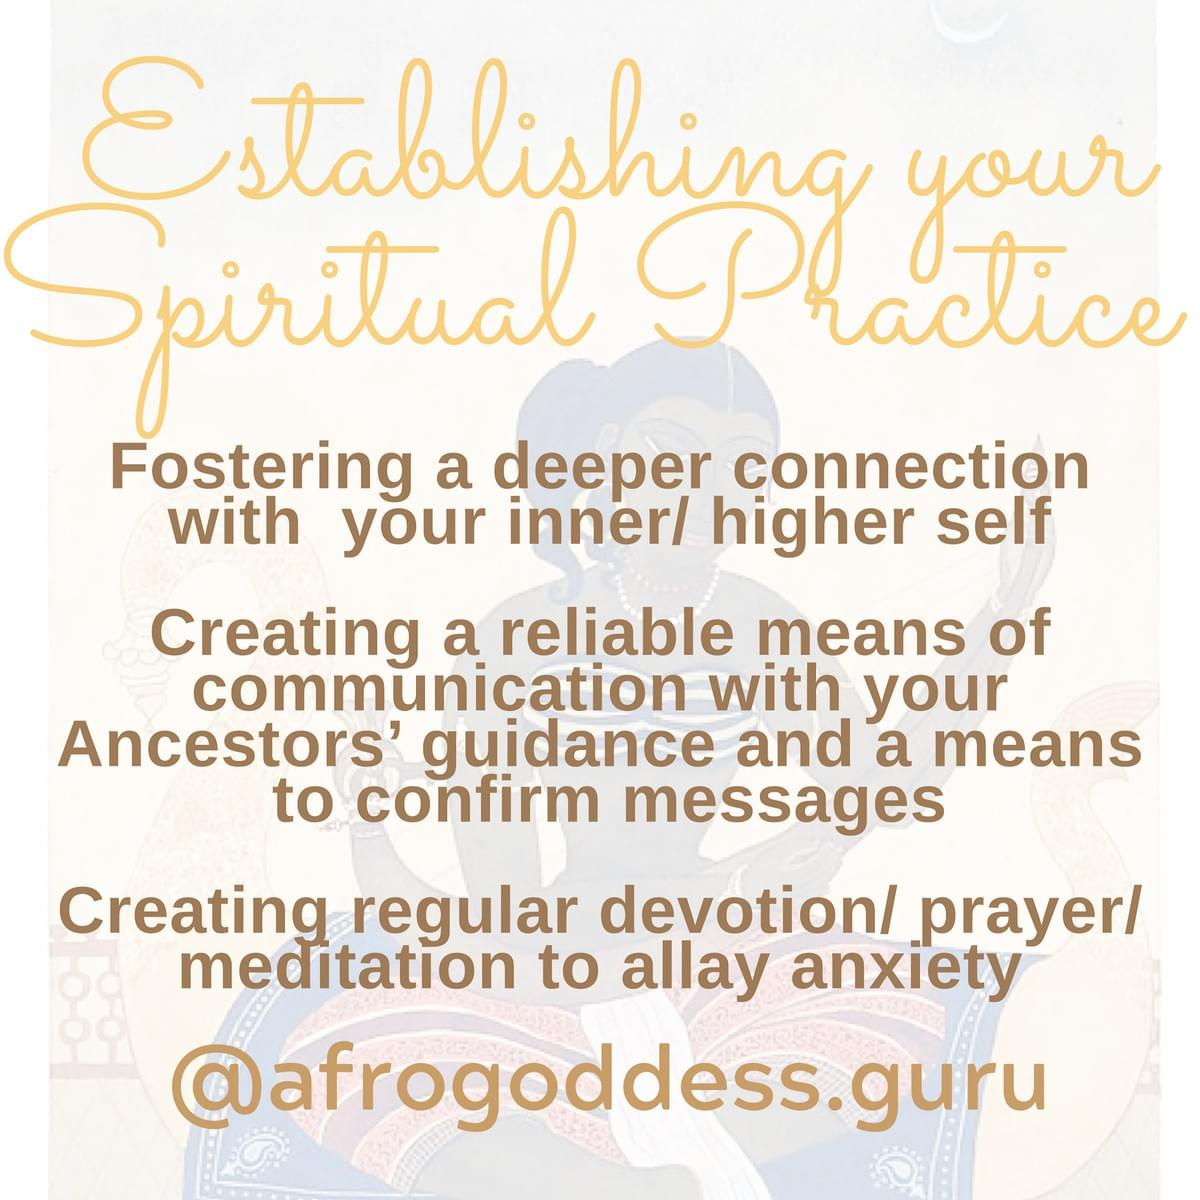 Contact me for guidance in establishing your personal spiritual practice